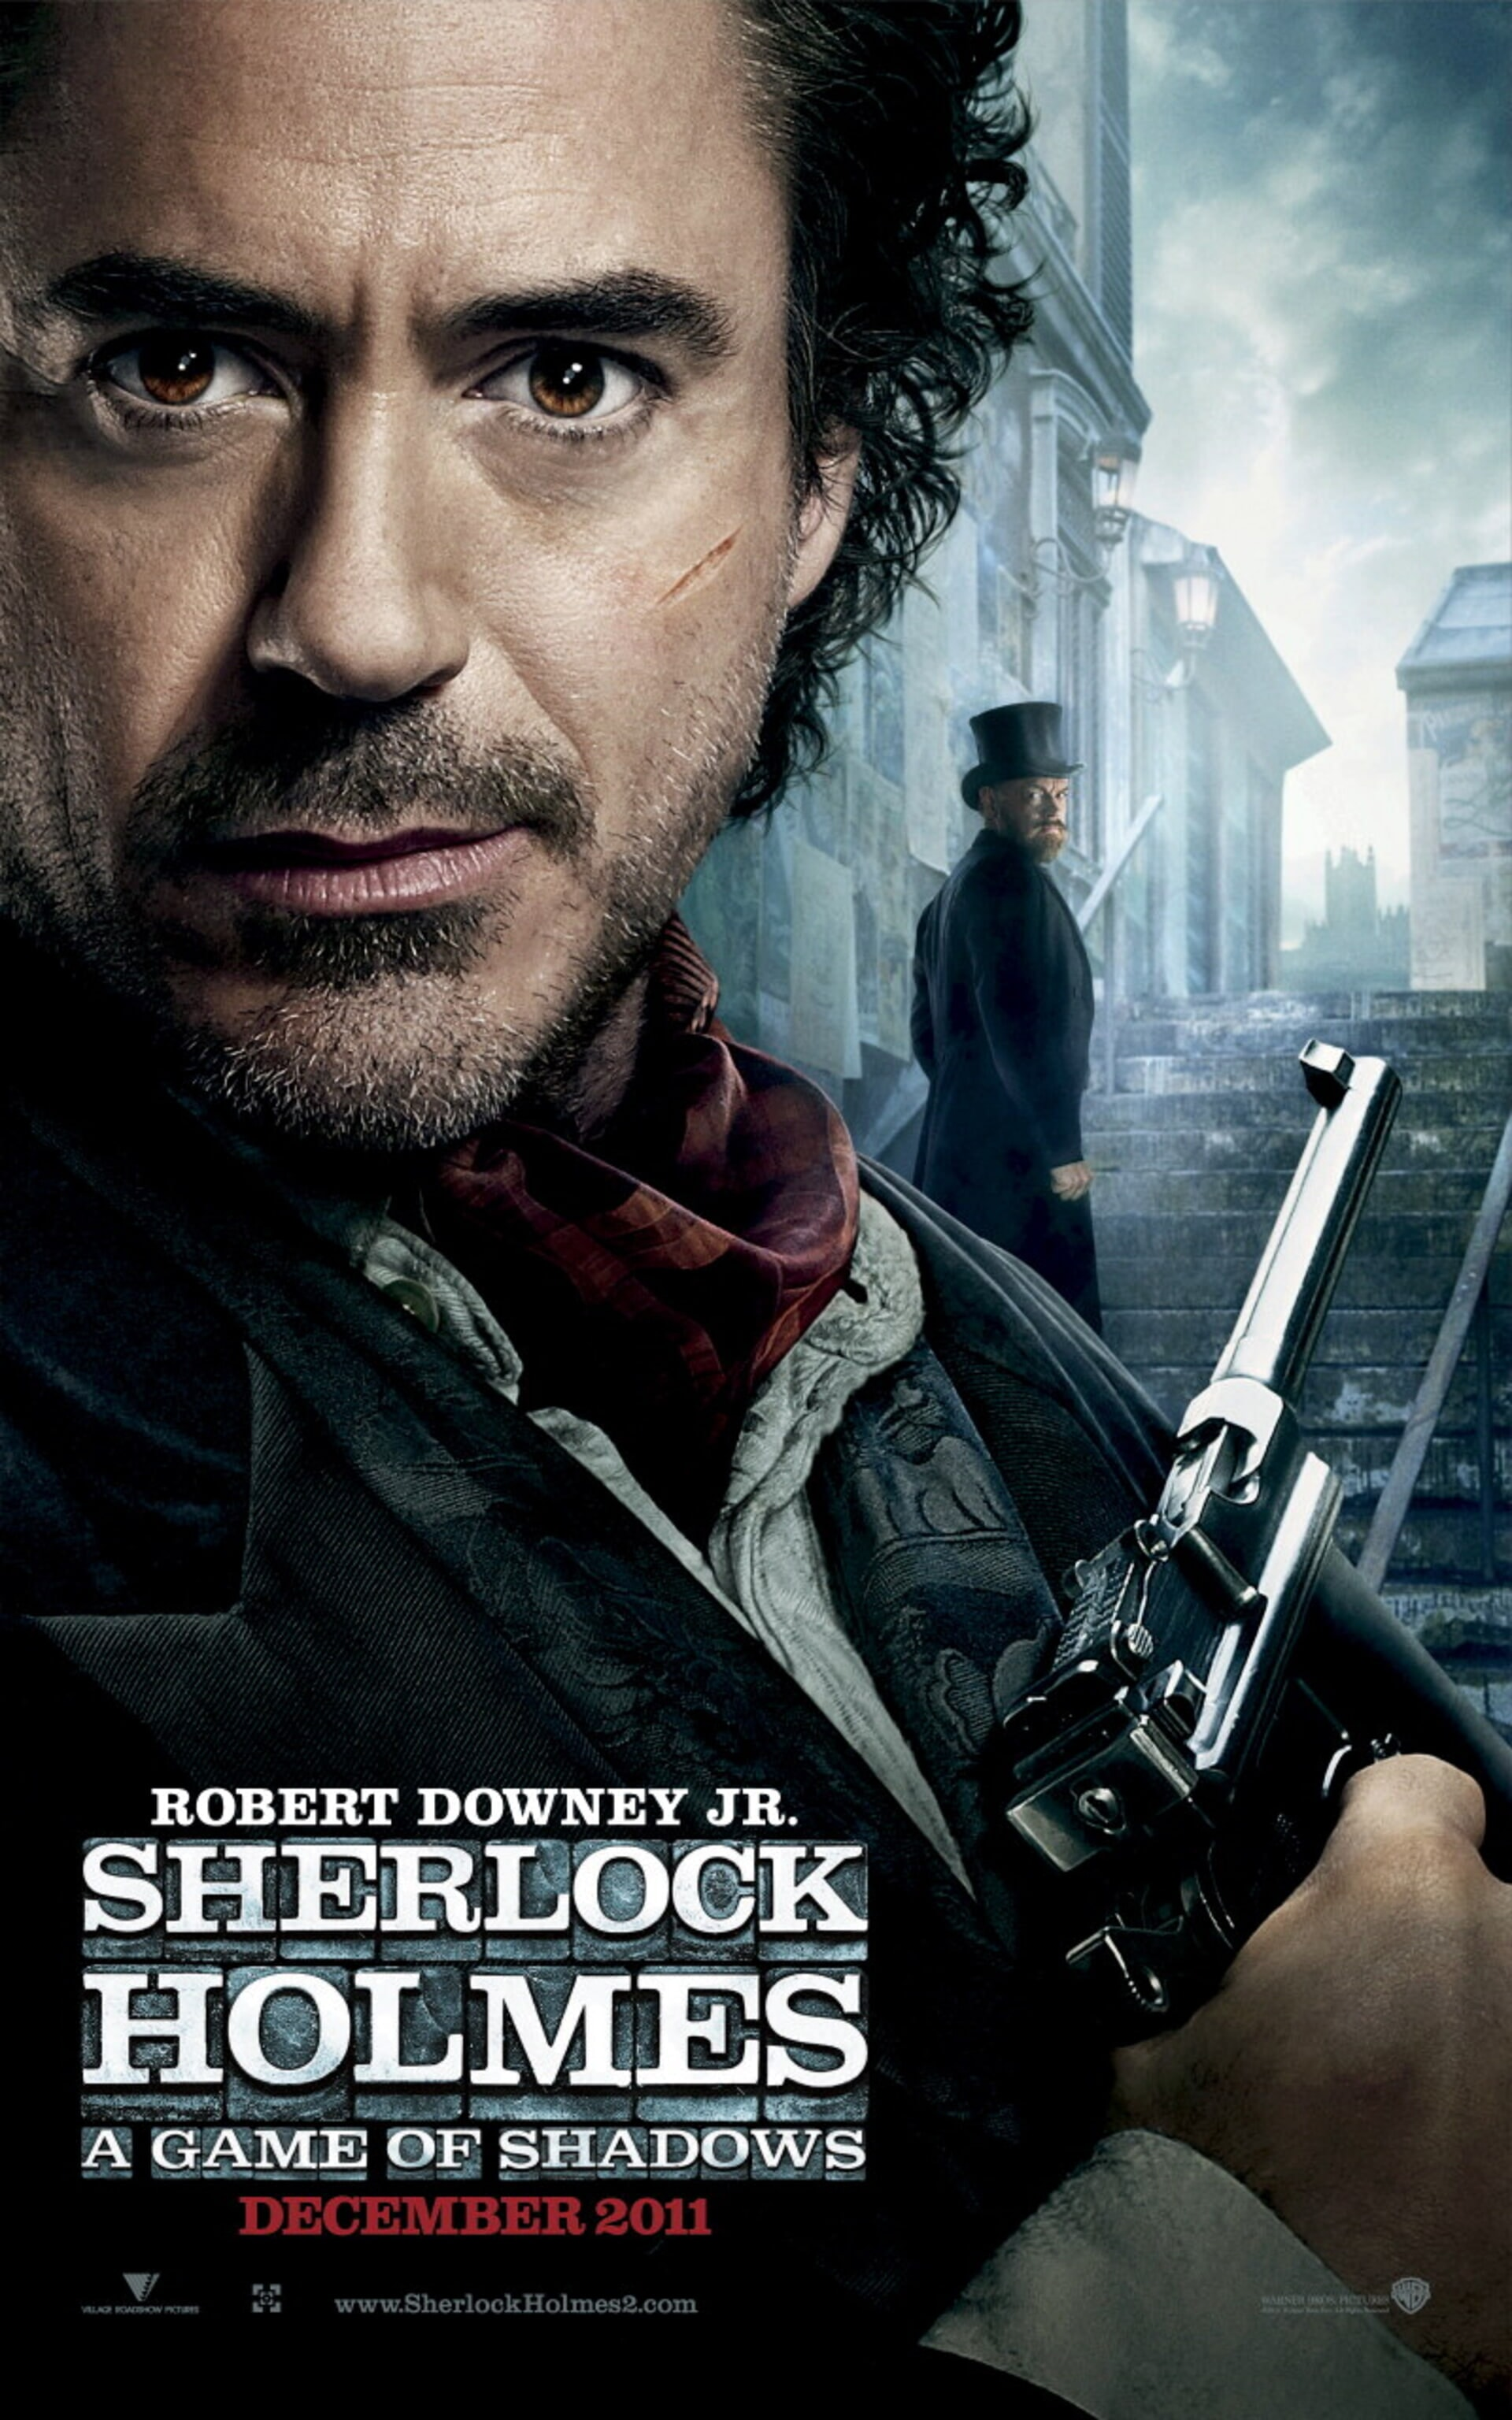 Sherlock Holmes: A Game of Shadows - Poster 1